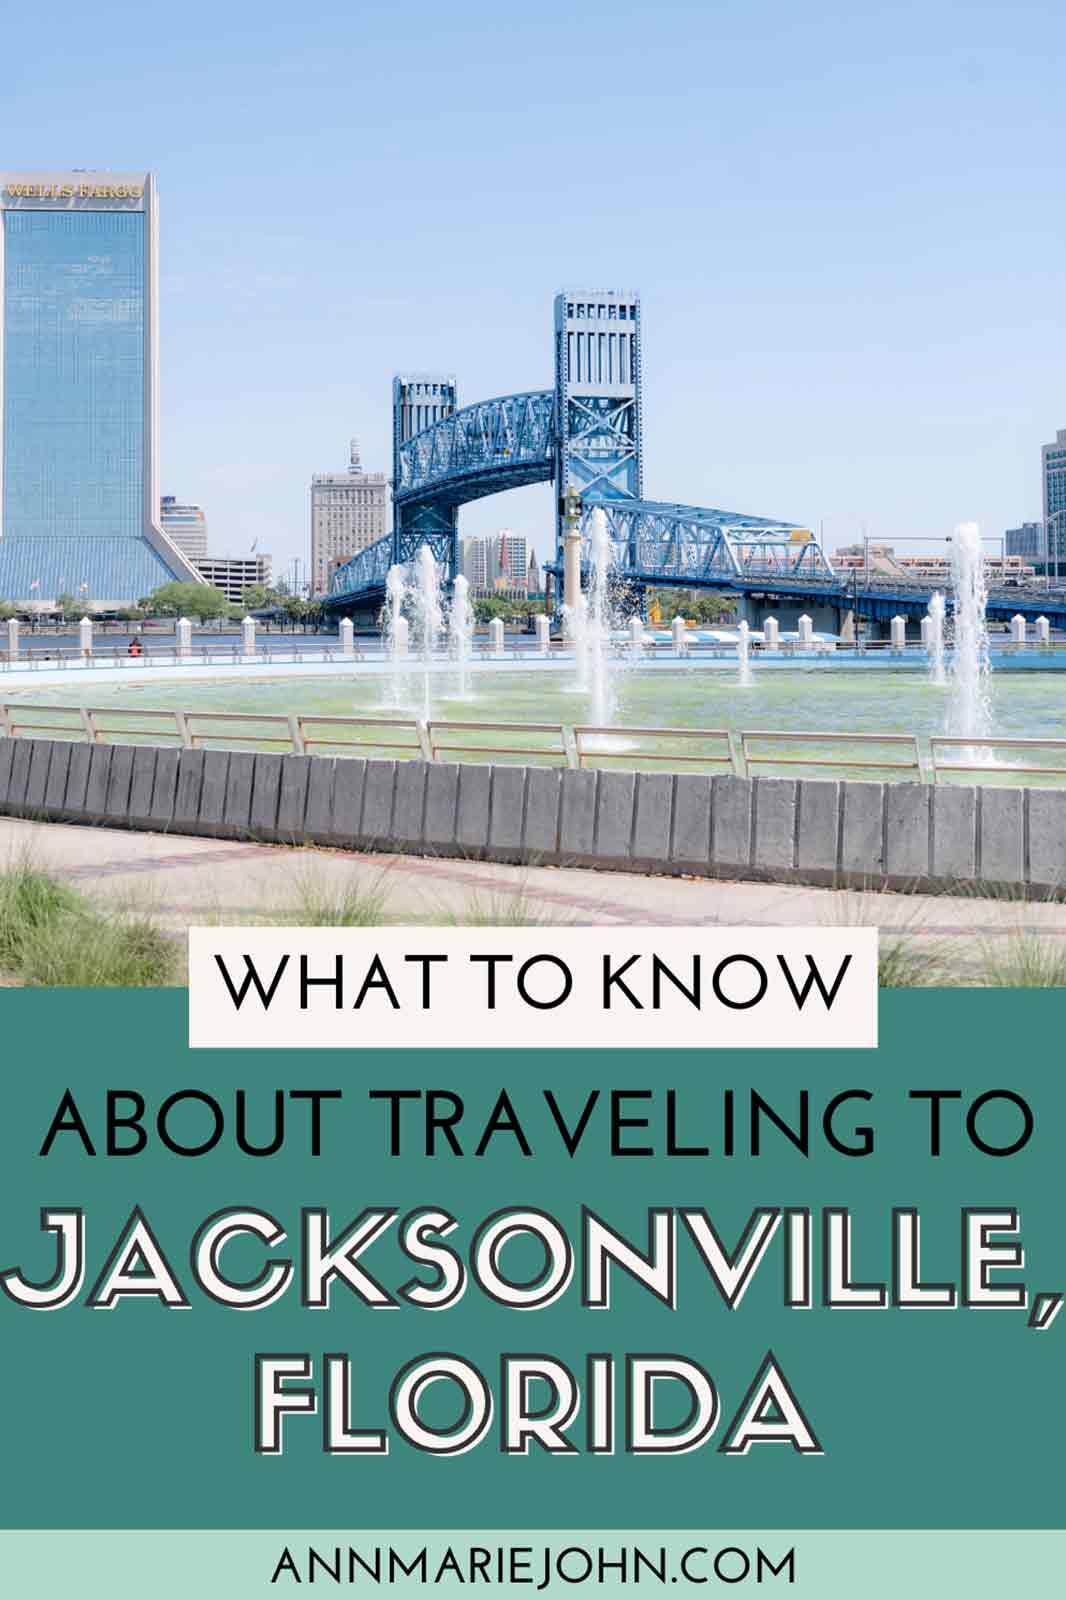 What to Know About Traveling to Jacksonville Florida